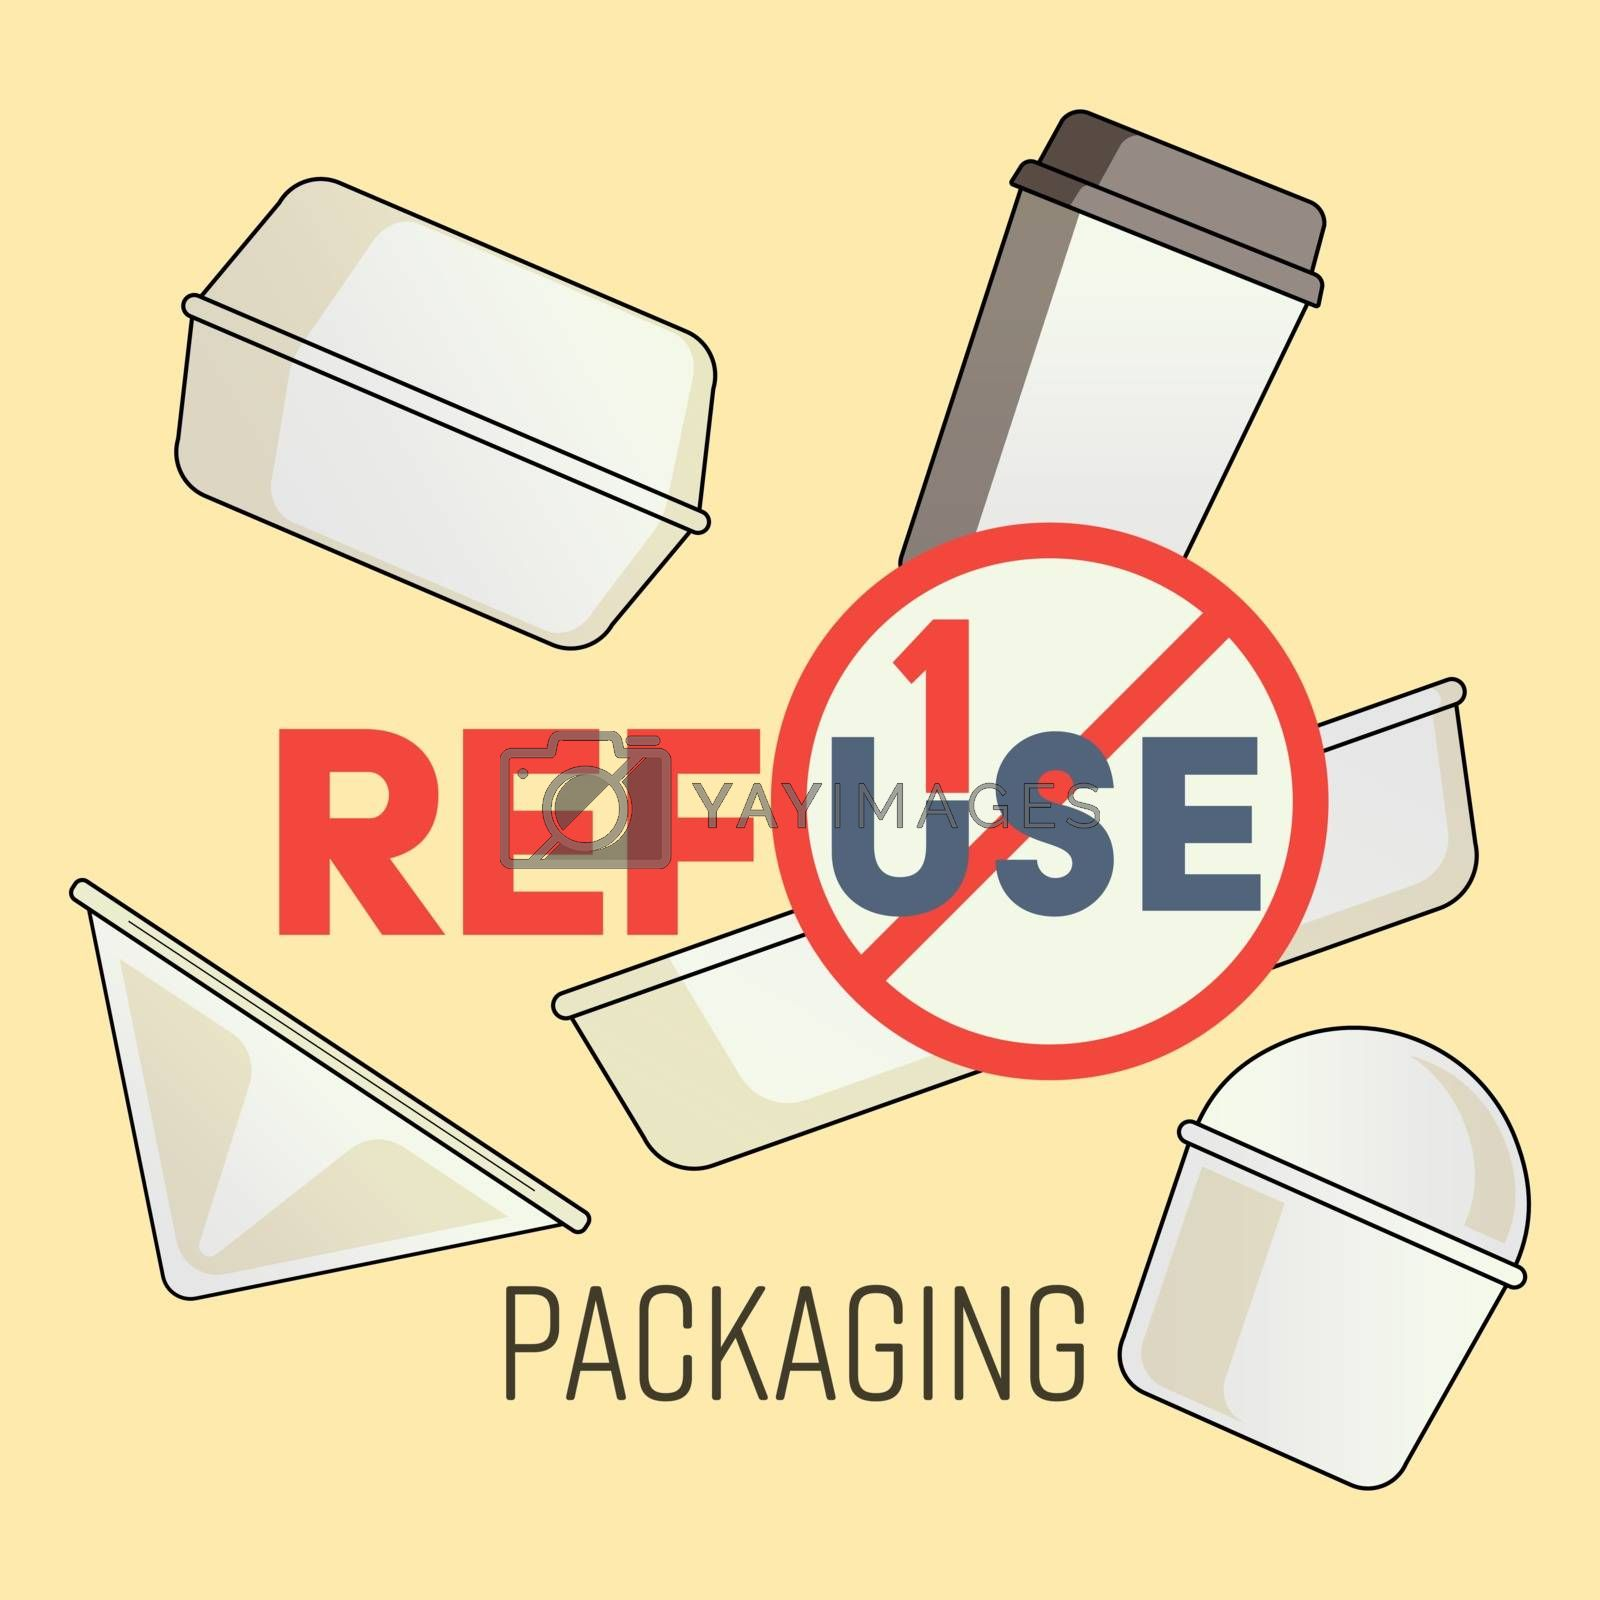 Typographic design with outline flat symbols of single-use plastic package. Refuse single-use packaging concept. Vector illustration.